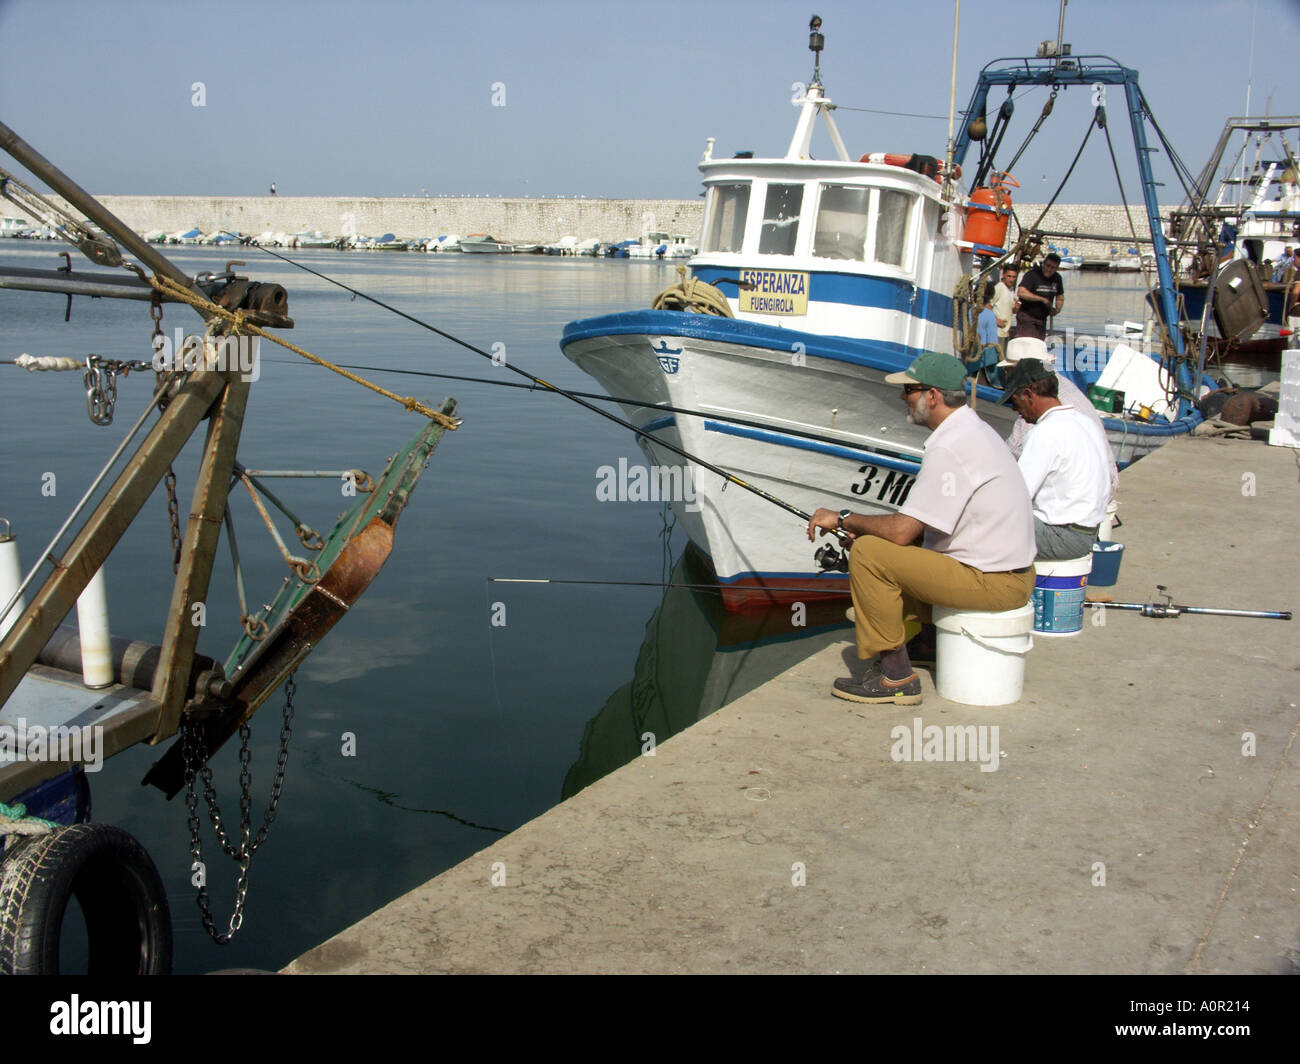 Three Anglers Fishing with Rod and Line next to a Commercial Fishing Boat, Puerto Deportivo de Fuengirola, Fuengirola, - Stock Image